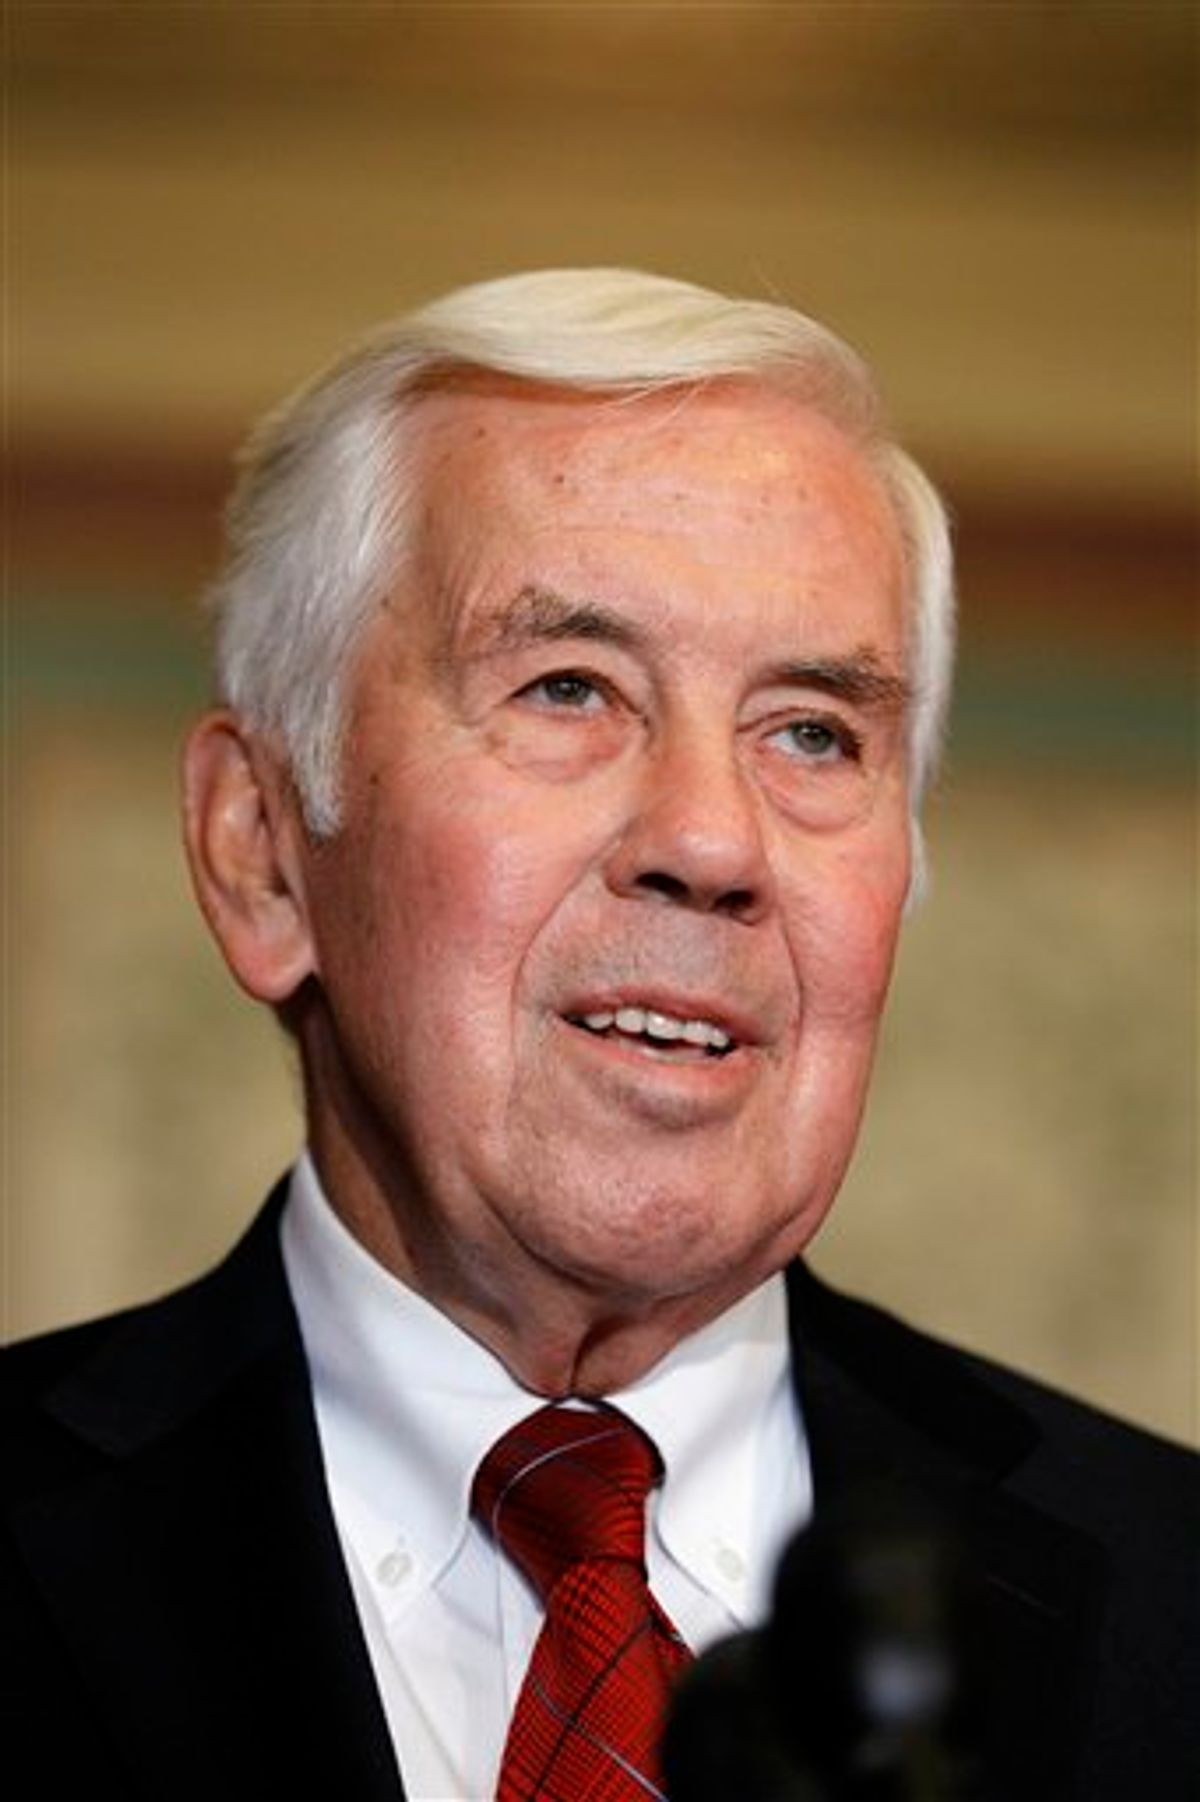 """FILE - In this Oct. 12, 2010, file photo, Chairman of the Senate Foreign Relations Committee Ranking Member, Sen. Richard Lugar, R-Ind., talks on Capitol Hill in Washington. What does a longtime Republican senator with a national reputation for working well with Democrats do in the face of a potentially career-ending tea party challenge? If you're Lugar, you tell them to """"get real."""" (AP Photo/Alex Brandon, File) (AP)"""